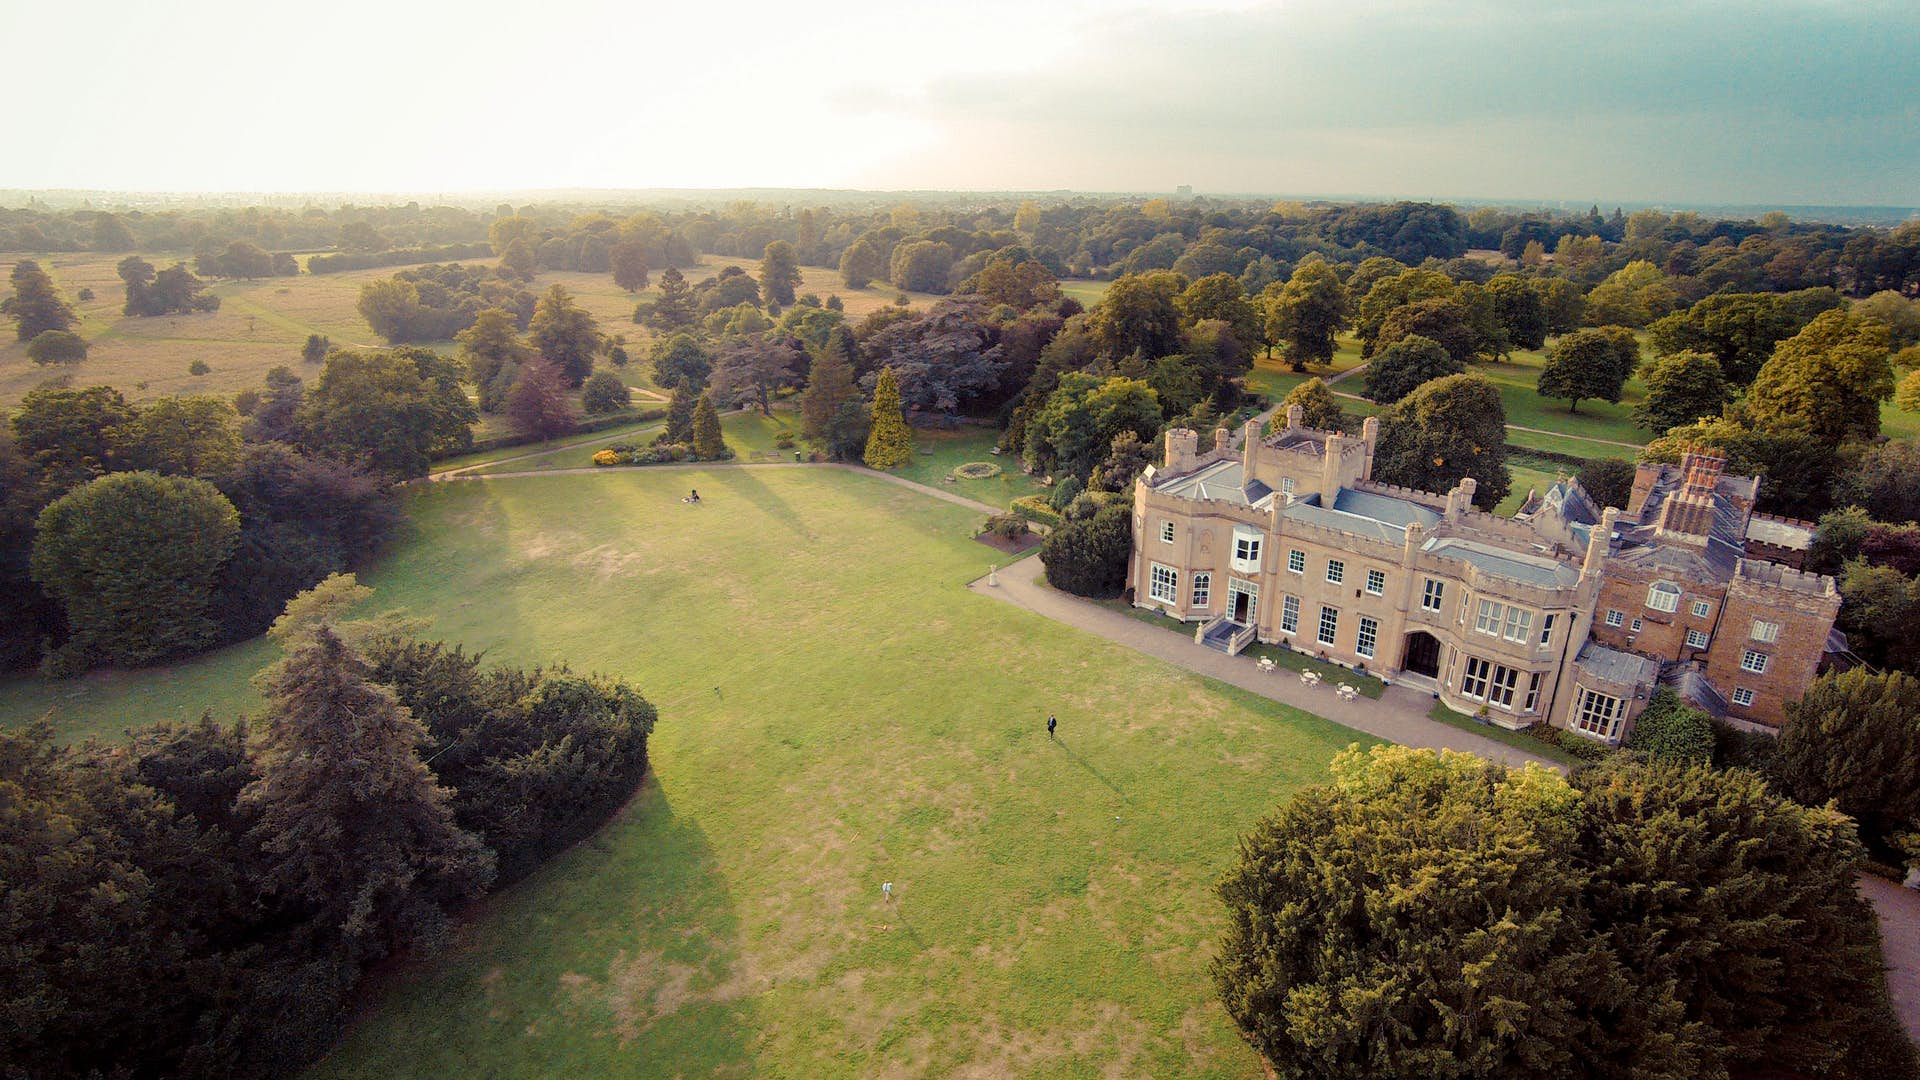 View of Nonsuch Mansion